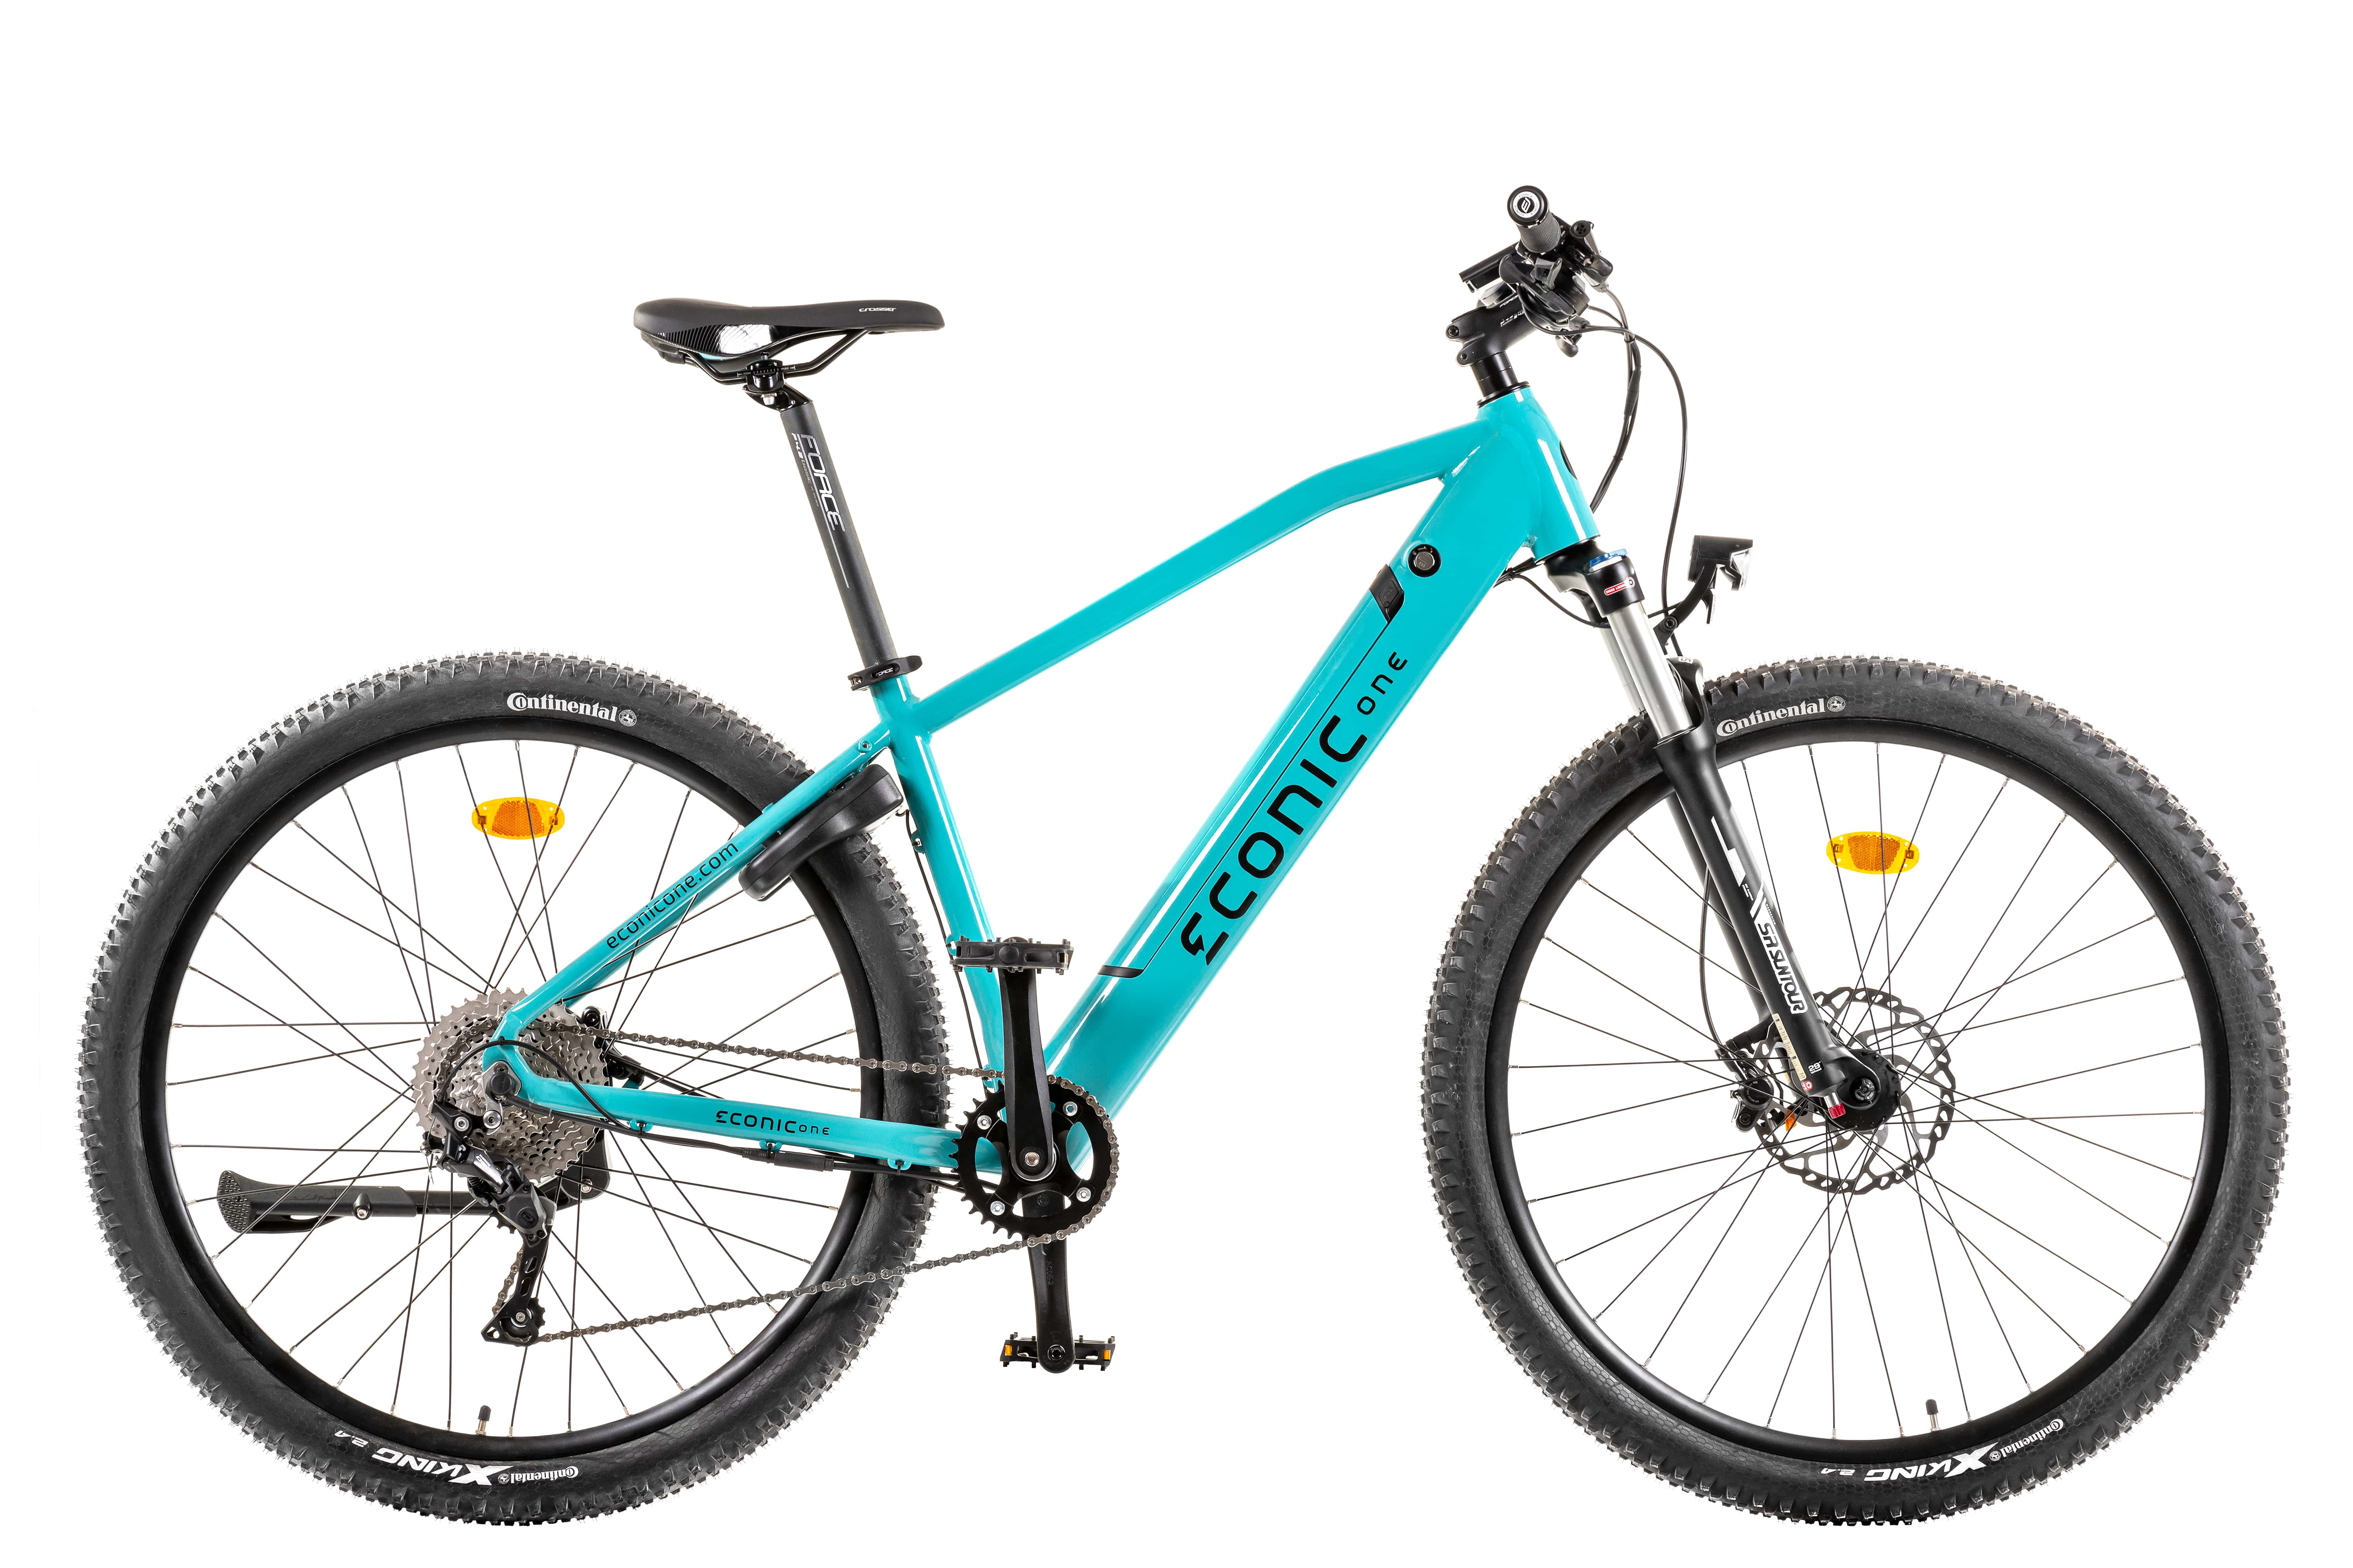 VTC Electrique Econic One Cross-country Smart M 44cm turquoise